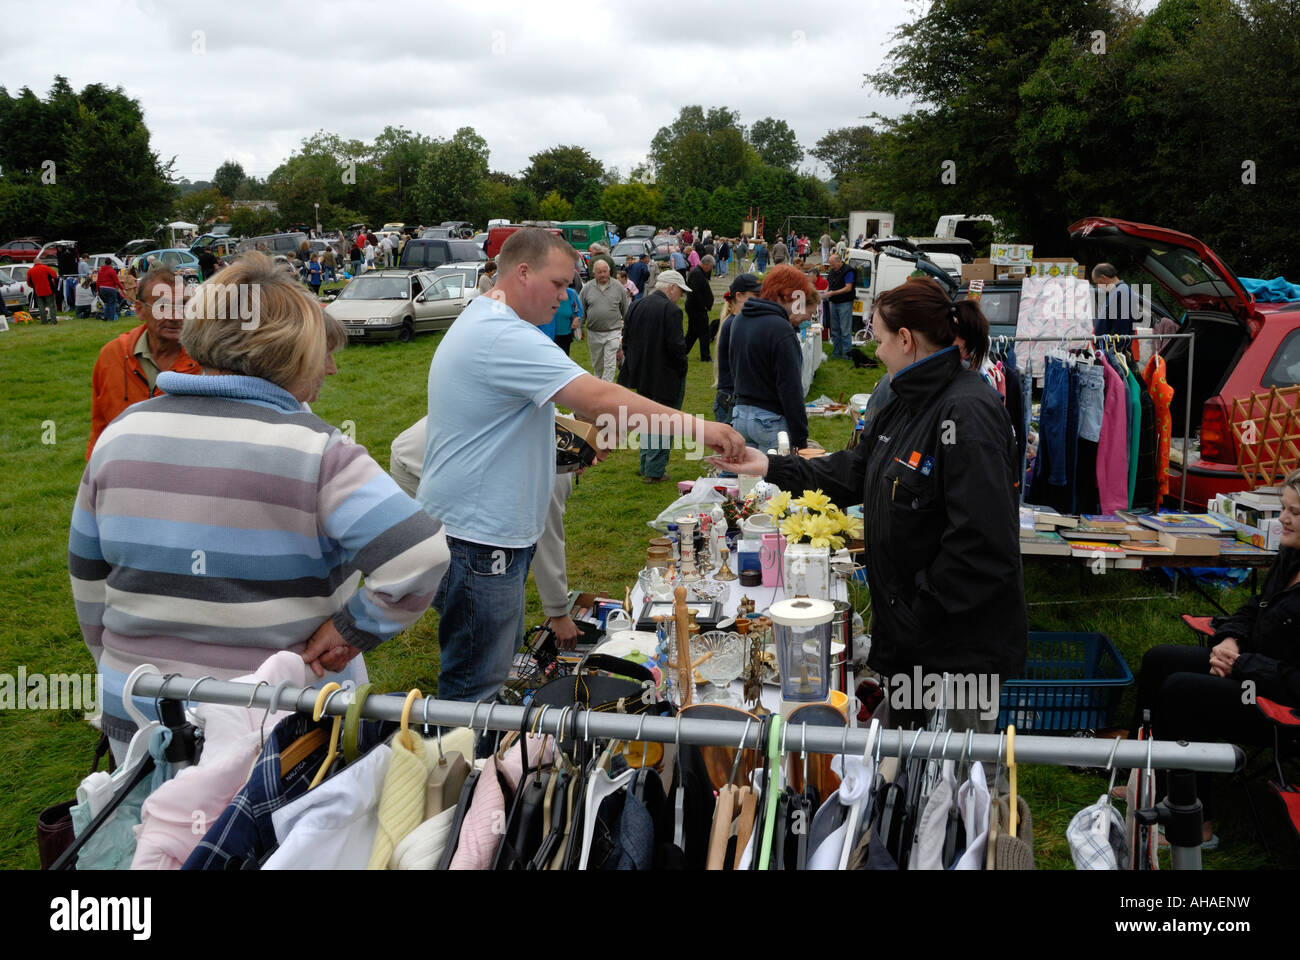 Car boot sale at pennant ceredigion wales stock image